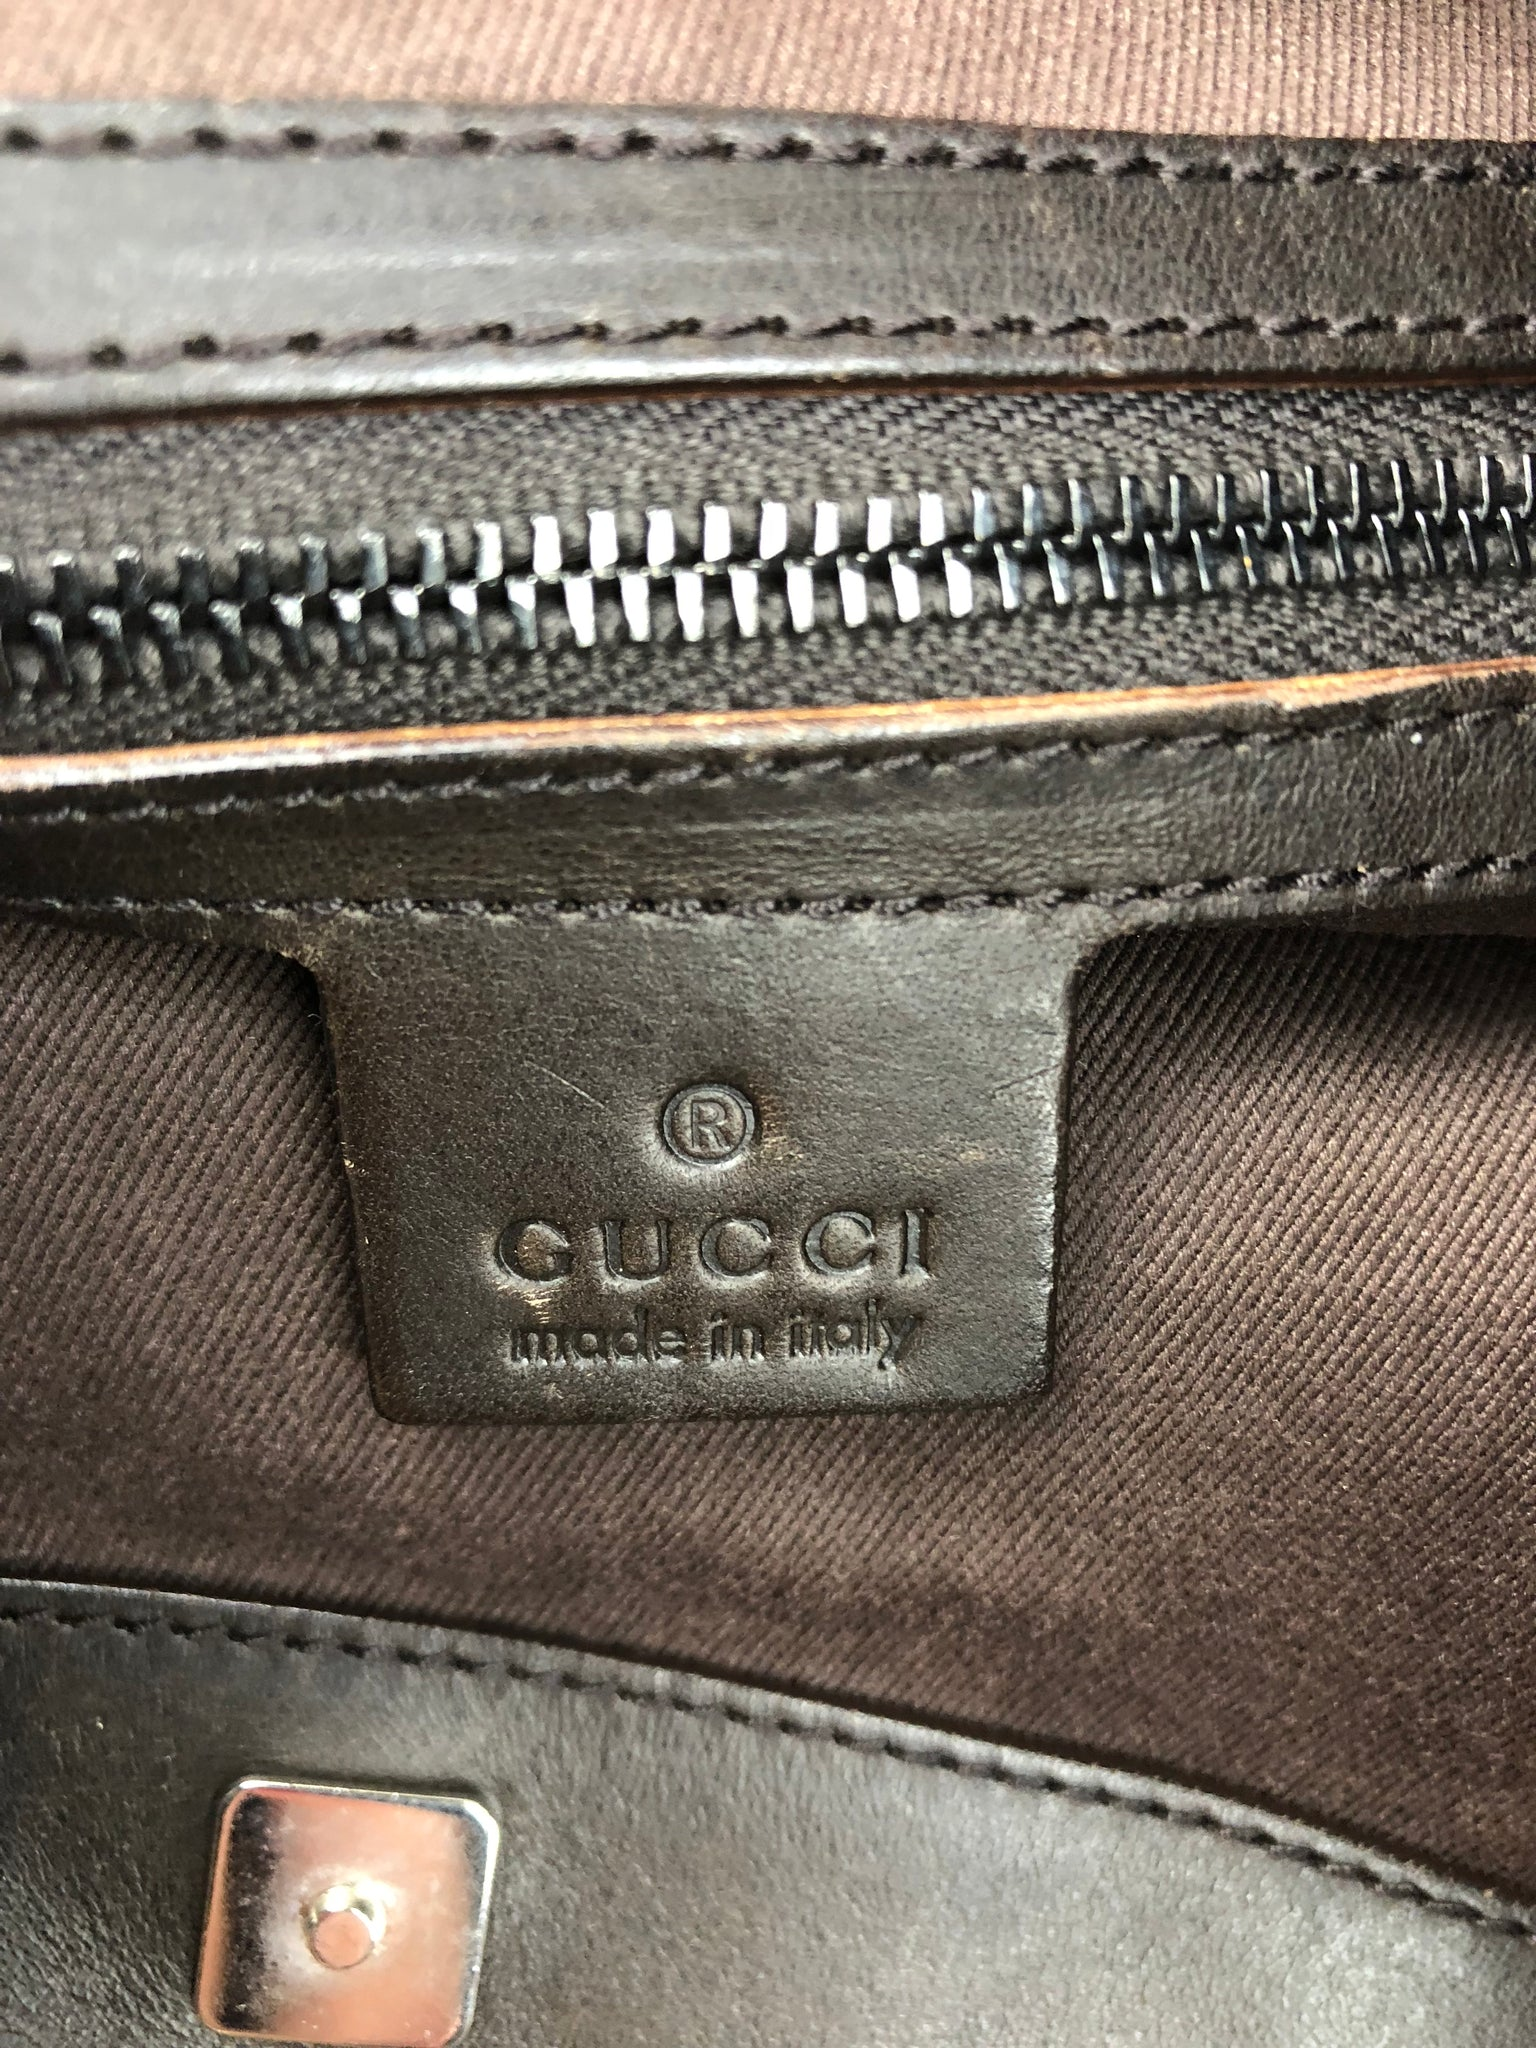 GUCCI Supreme Hobo Bag